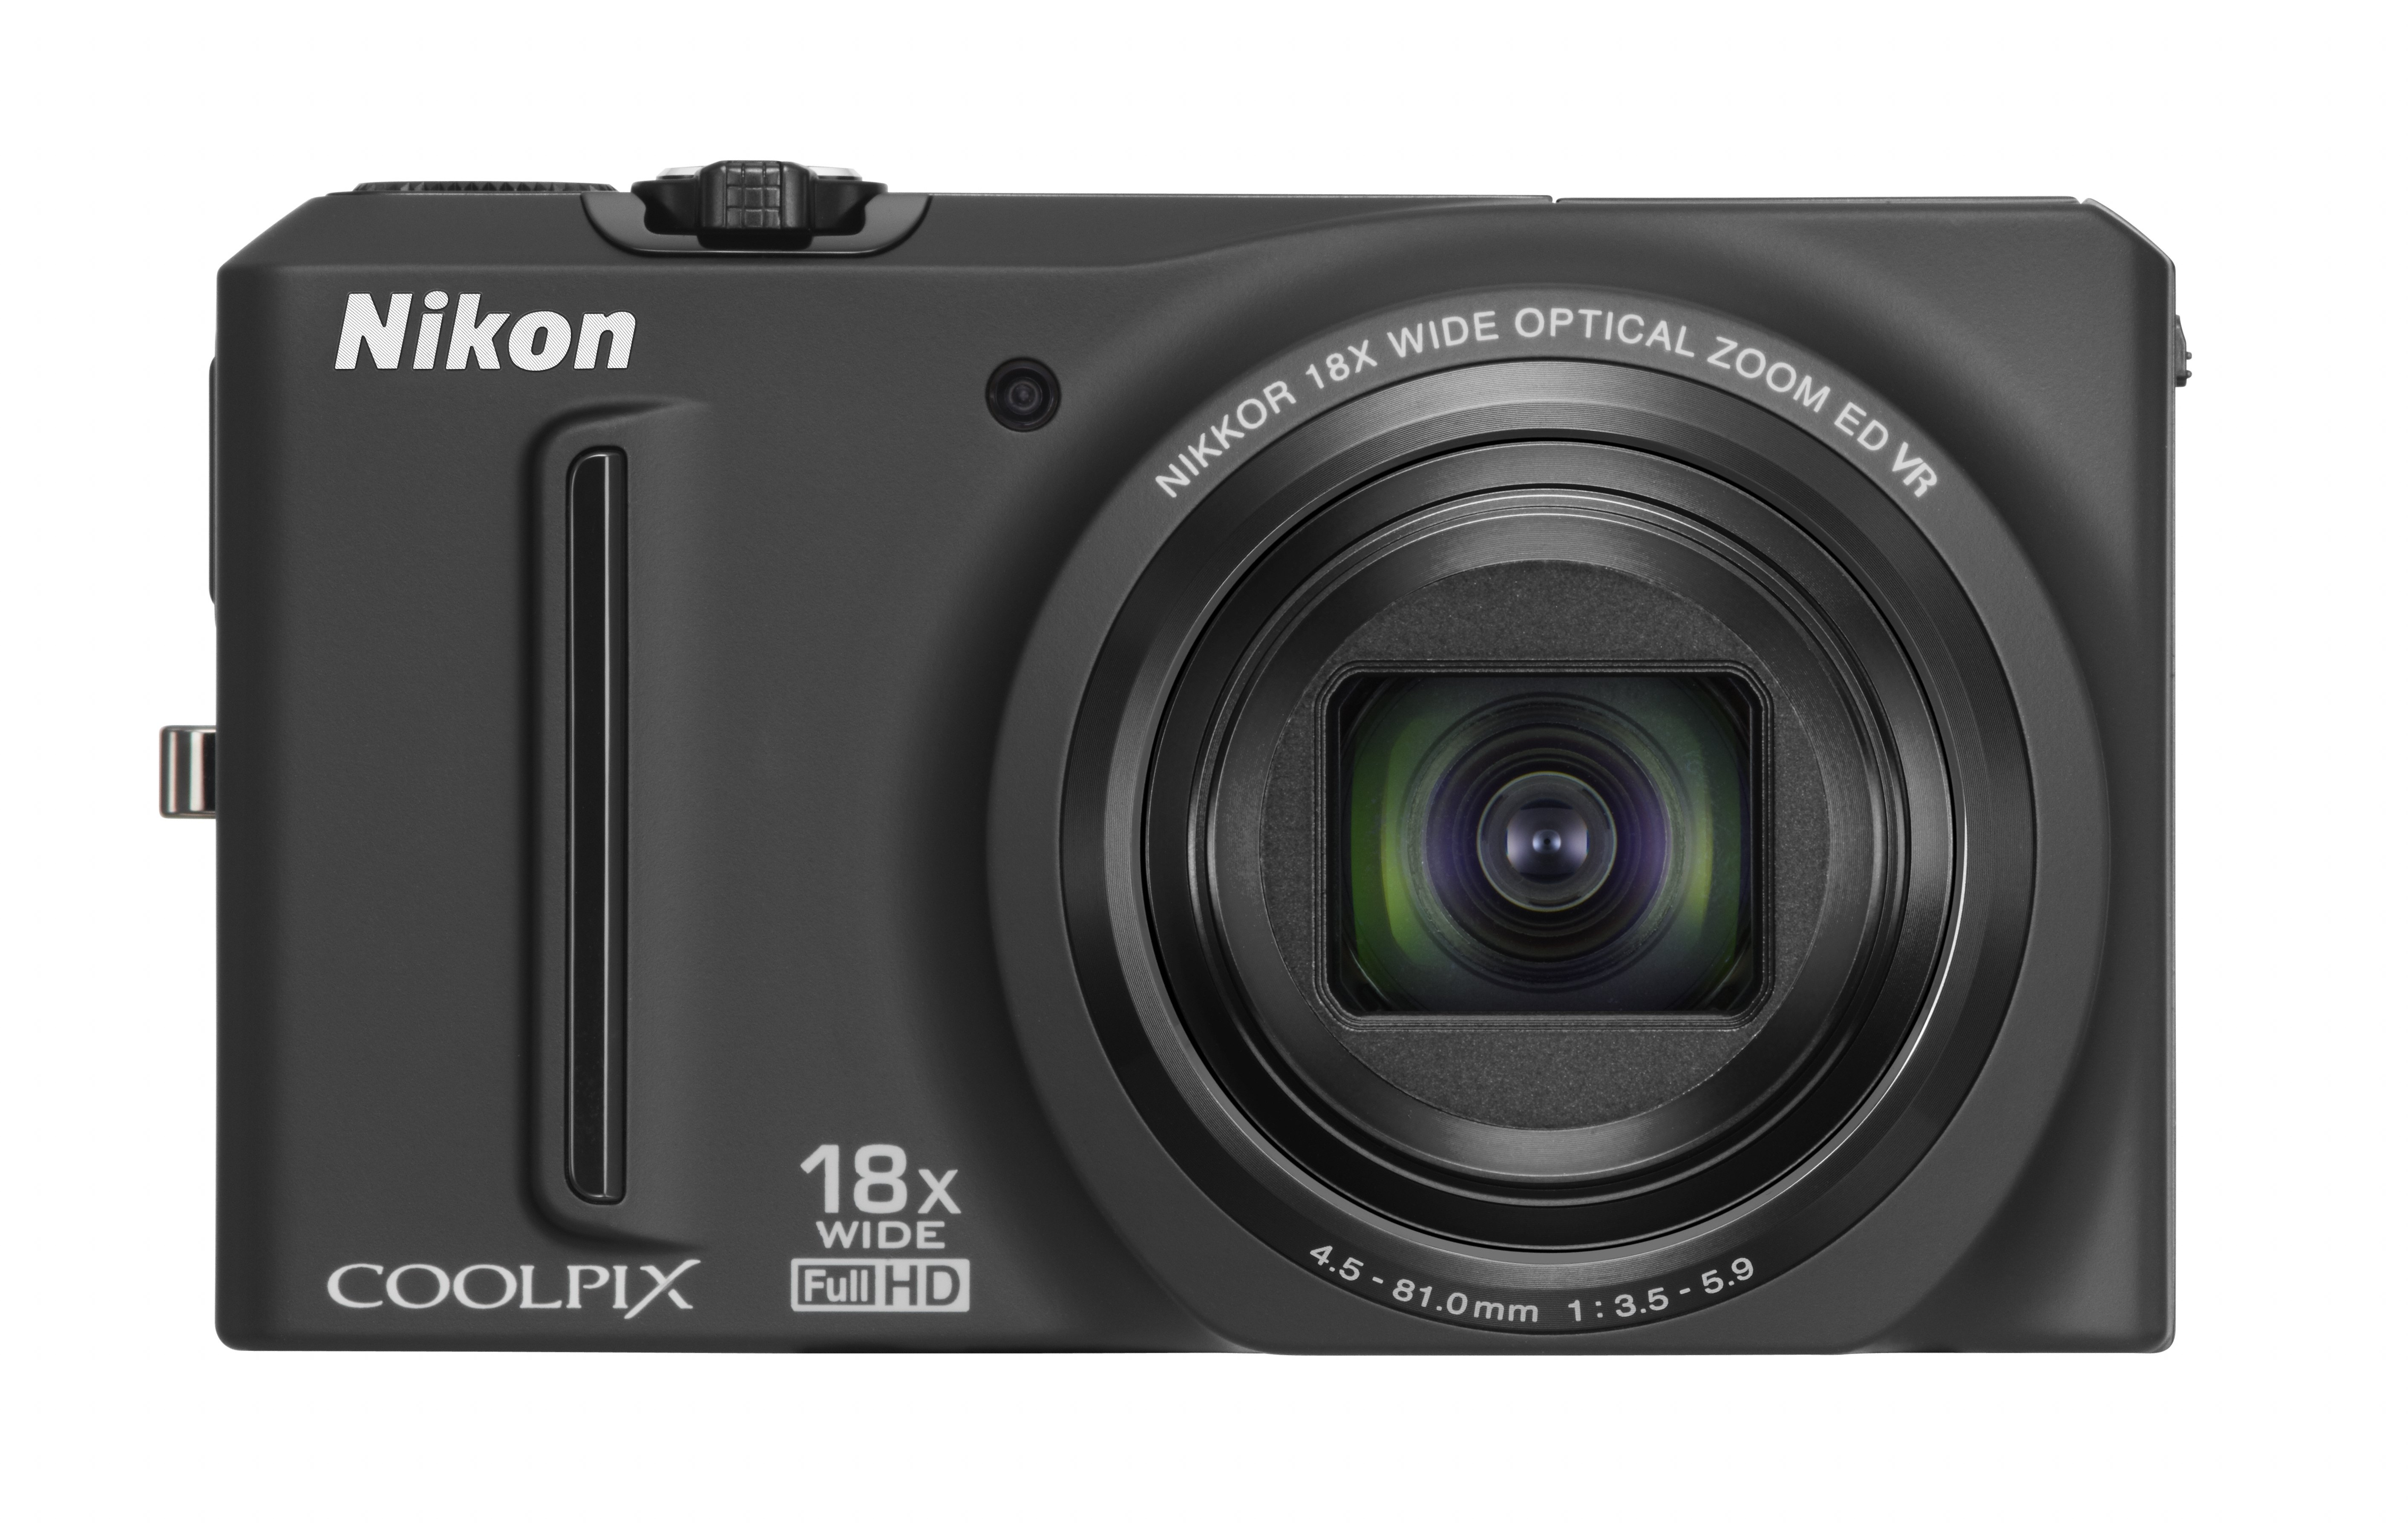 coolpix s9100 manual how to and user guide instructions u2022 rh taxibermuda co Sony HX9V vs Nikon S9100 Sony HX9V vs Nikon S9100